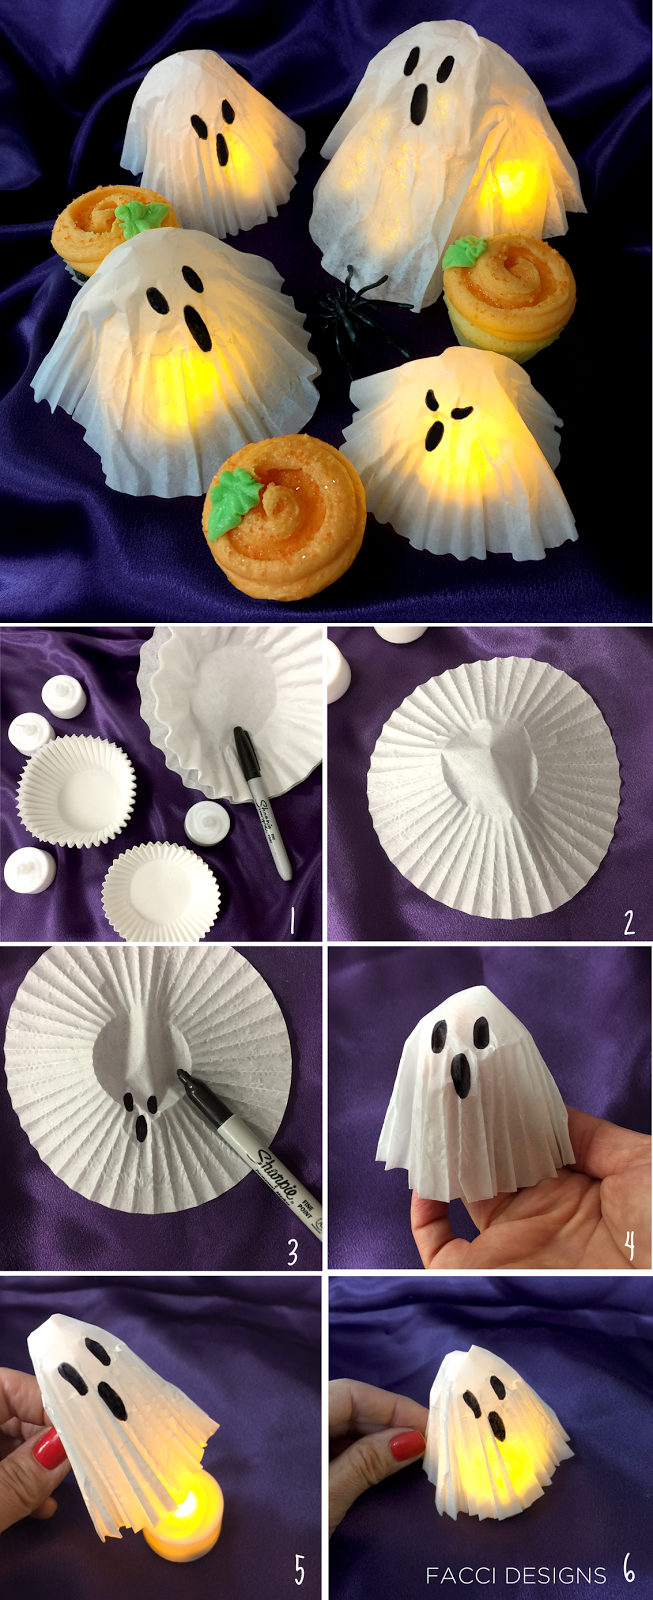 16 simple and easy to make Halloween ghost craft for kids. Halloween simple cupcake ghost craft for kids to make. Halloween ghost craft ideas. Easy to make DIY Halloween Paper craft ghost 2018. Halloween paper craft ghost luminaries for outdoor and indoor decoration. Preschool paper ghost craft ideas for kids to make. Spooky ghost craft decoration for home. Paper craft for indoor decoration. Scary Halloween craft decoration lights.